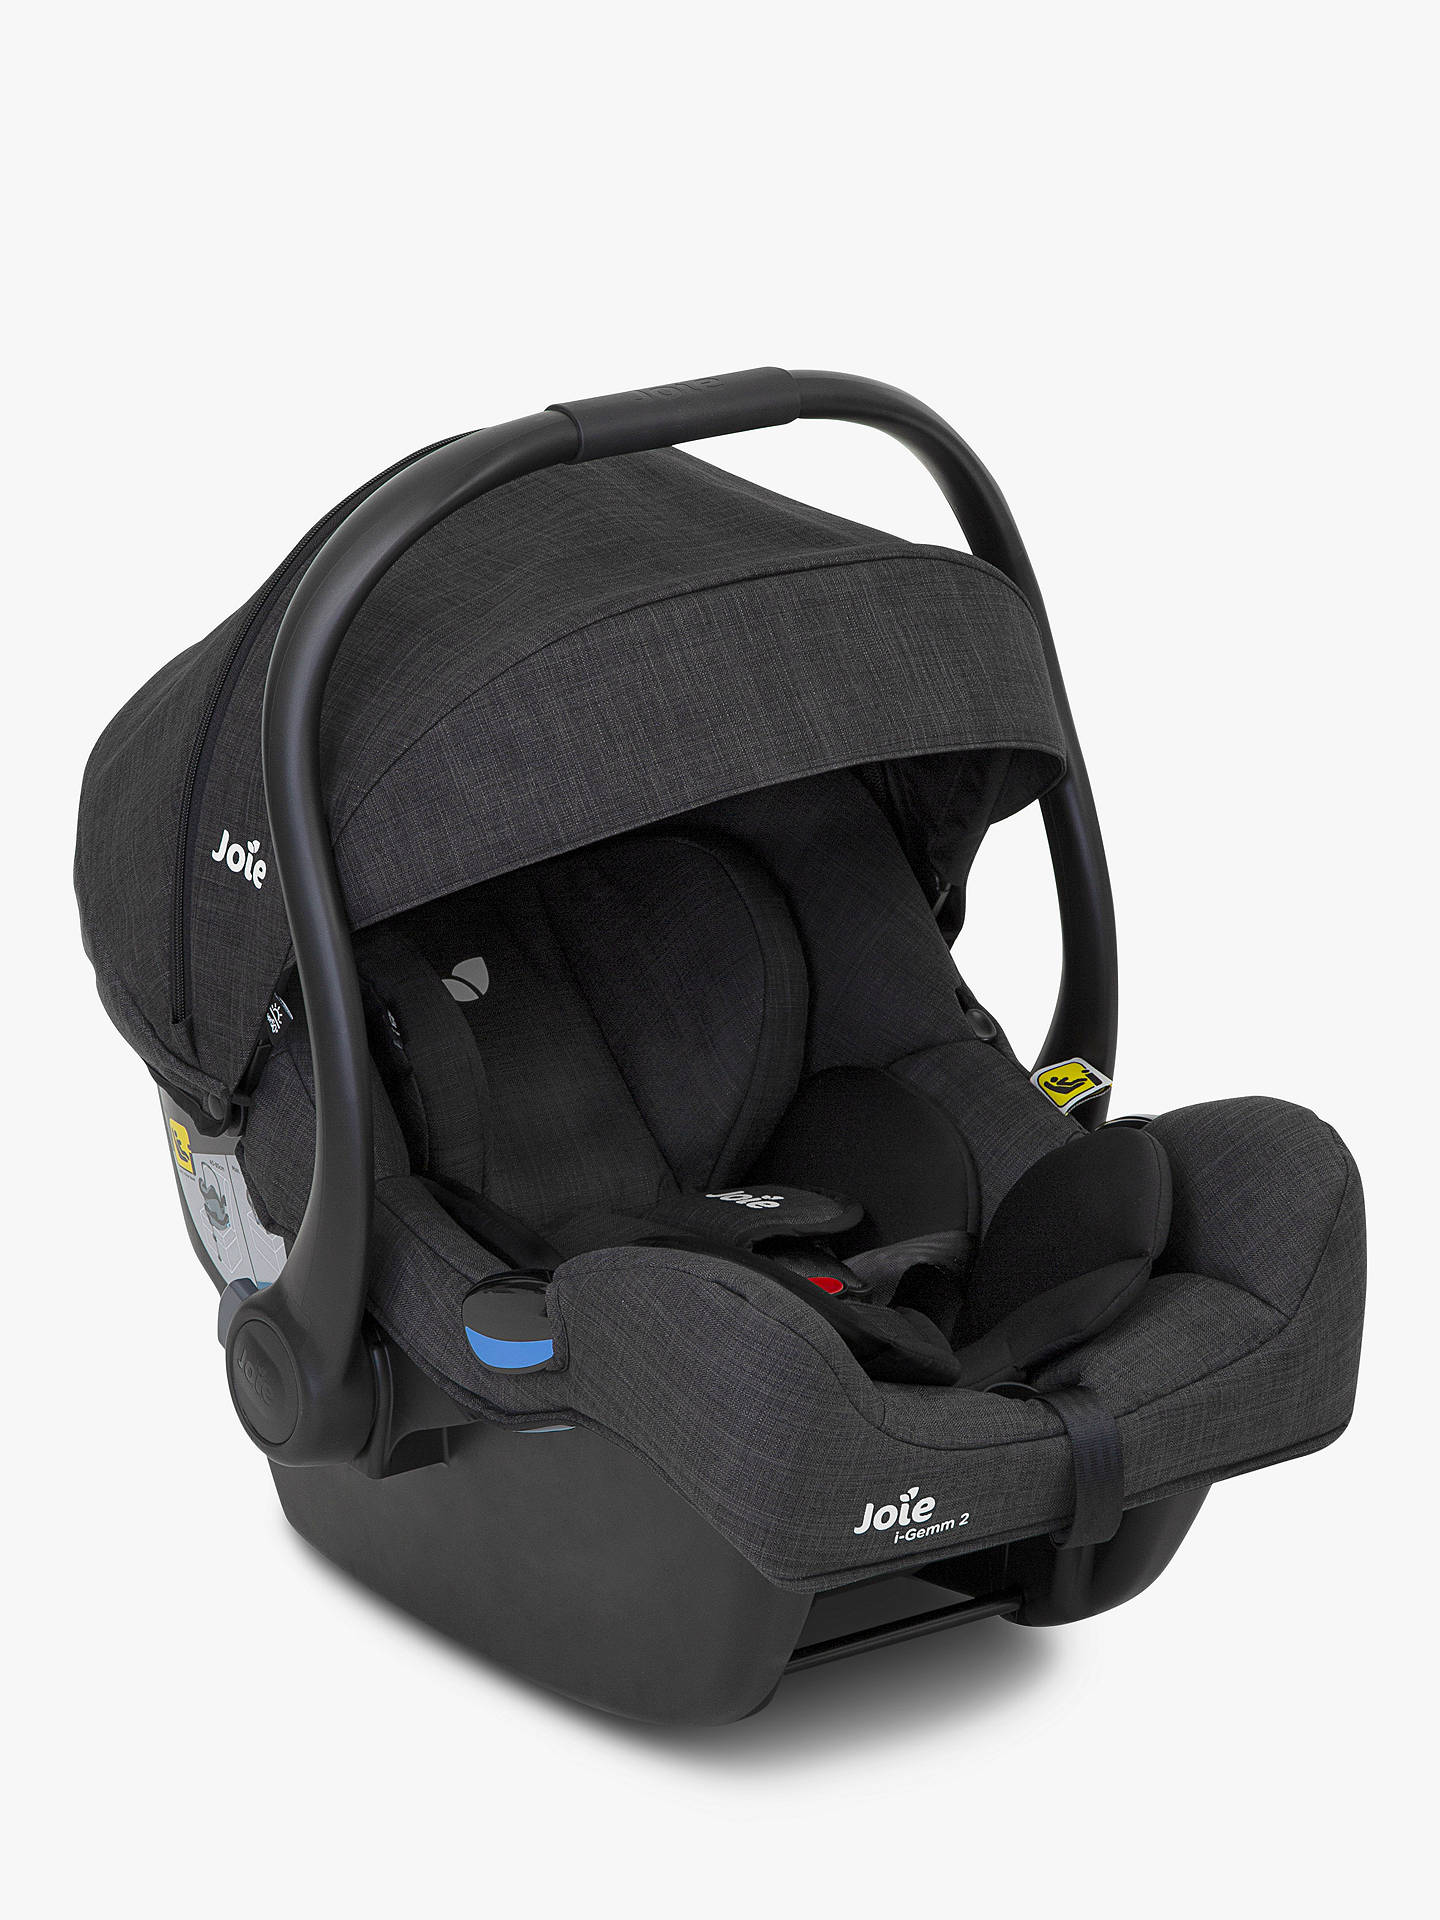 Joie i-Gemm Group 0+ Baby Car Seat, Pavement